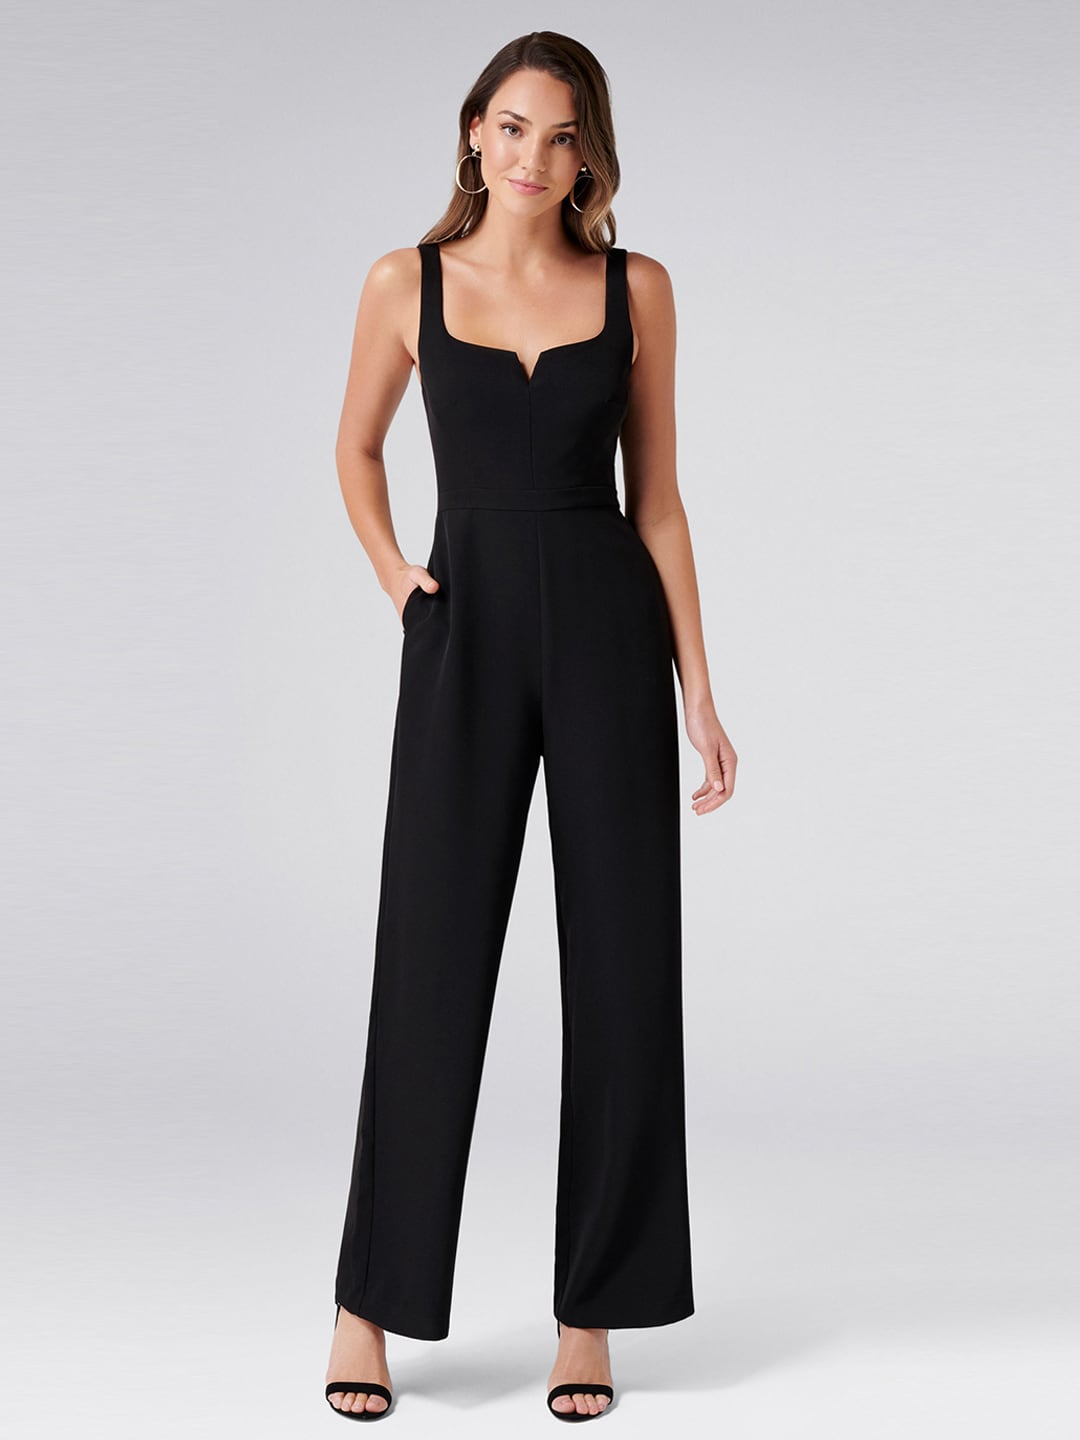 d71d7be34345 Forever New Womens Jumpsuit - Buy Forever New Womens Jumpsuit online in  India